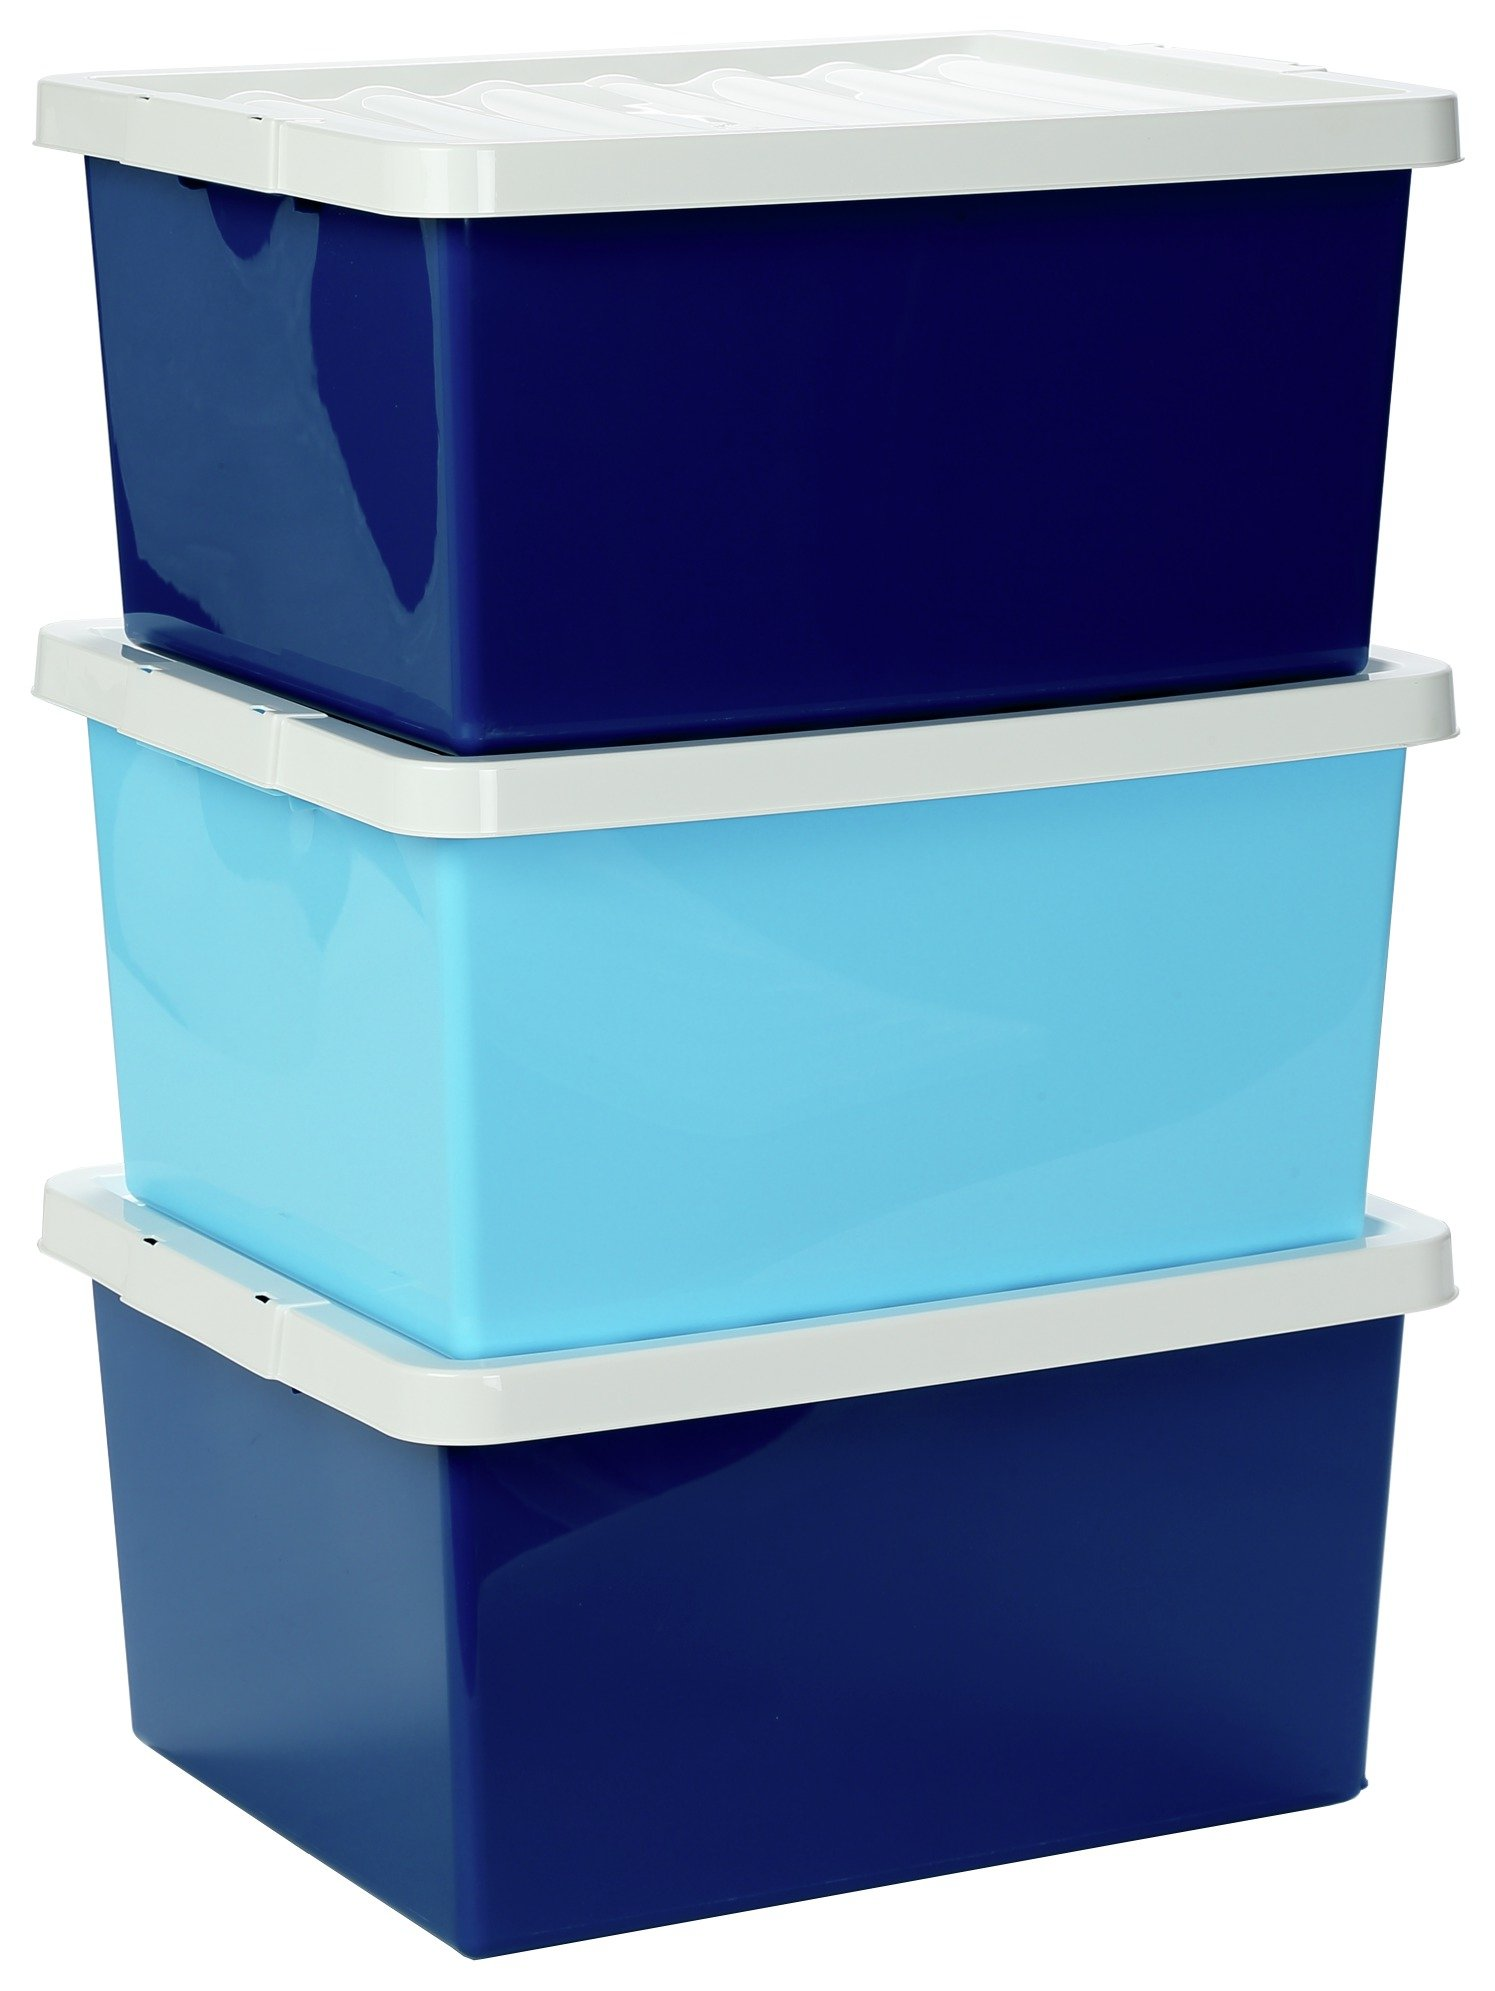 Argos Home Set Of 3 Blue Storage Boxes With Lids698/6946